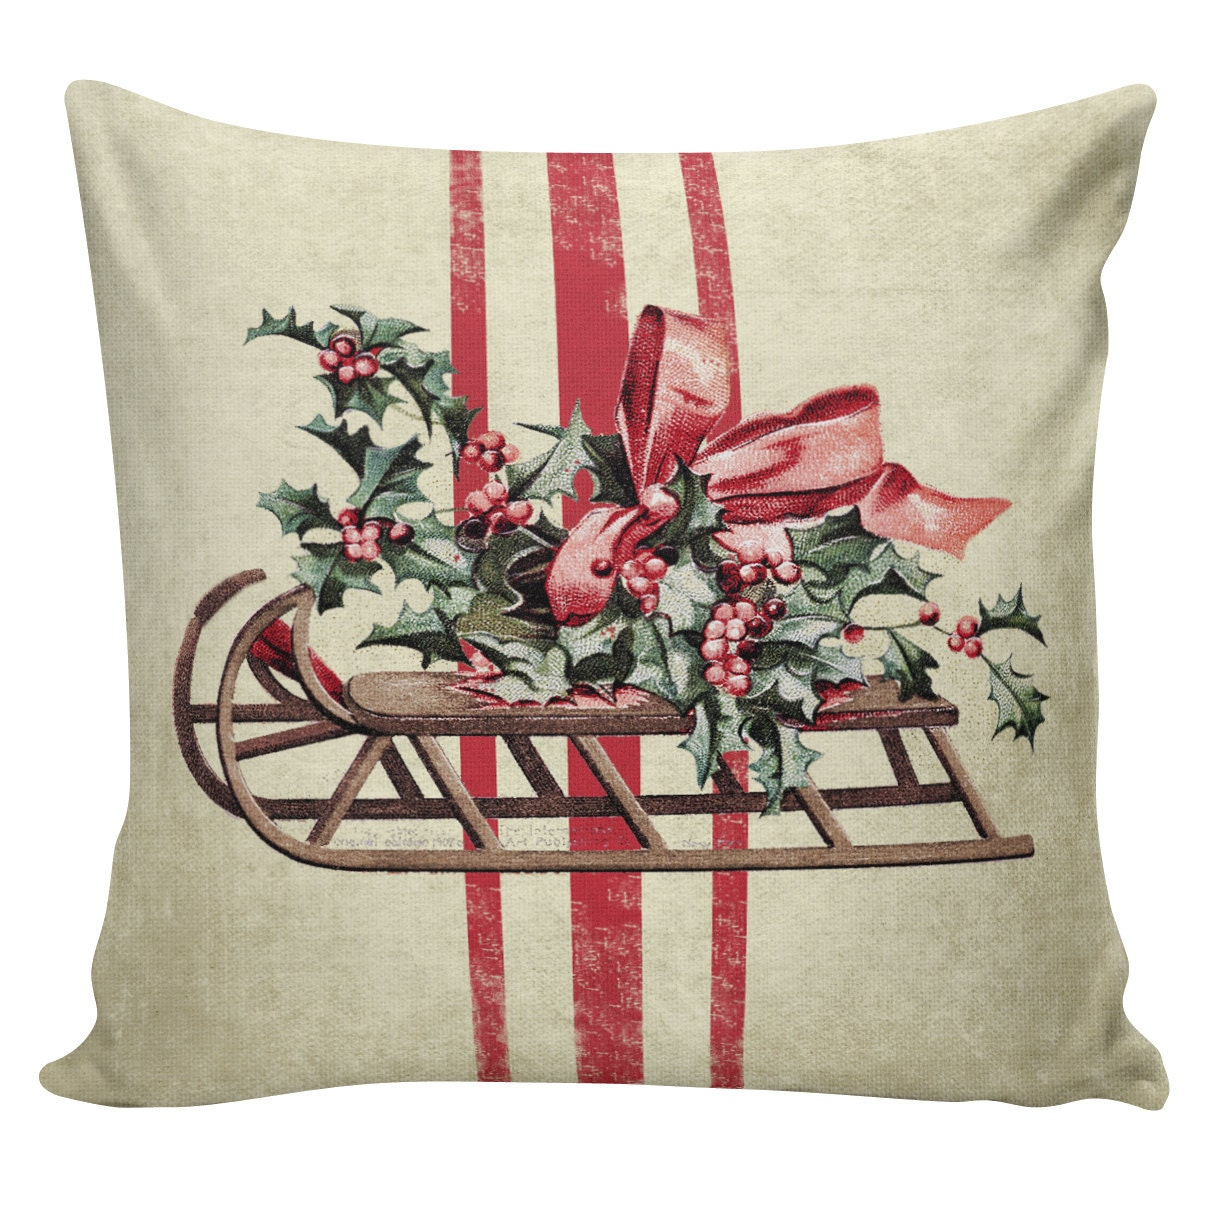 Etsy Throw Pillow Sets : Holiday Throw Pillow Cover Vintage by ElliottHeathDesigns on Etsy